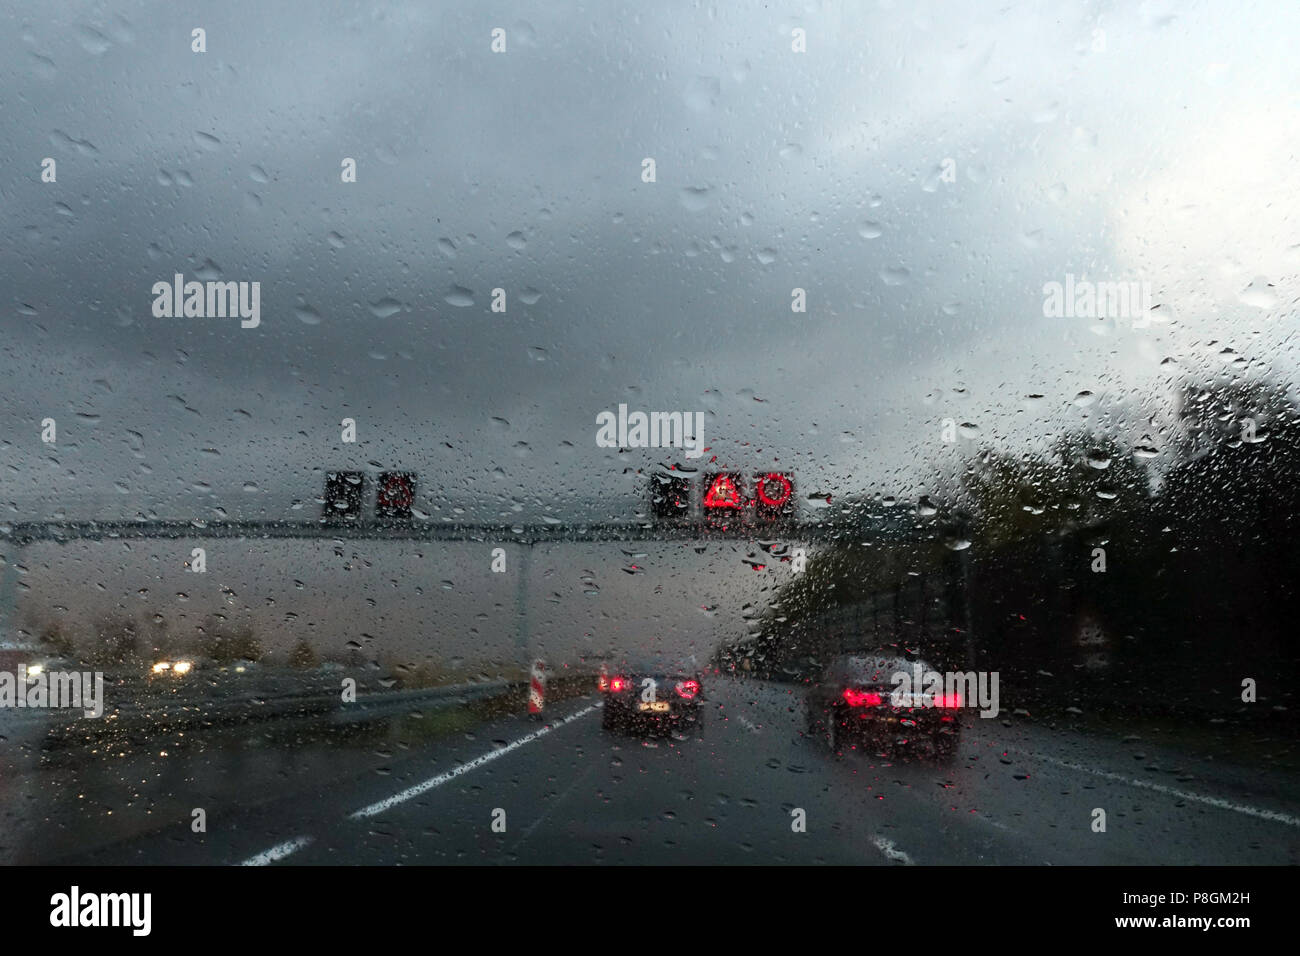 Hannover, Germany, poor visibility in rainy weather on the highway - Stock Image